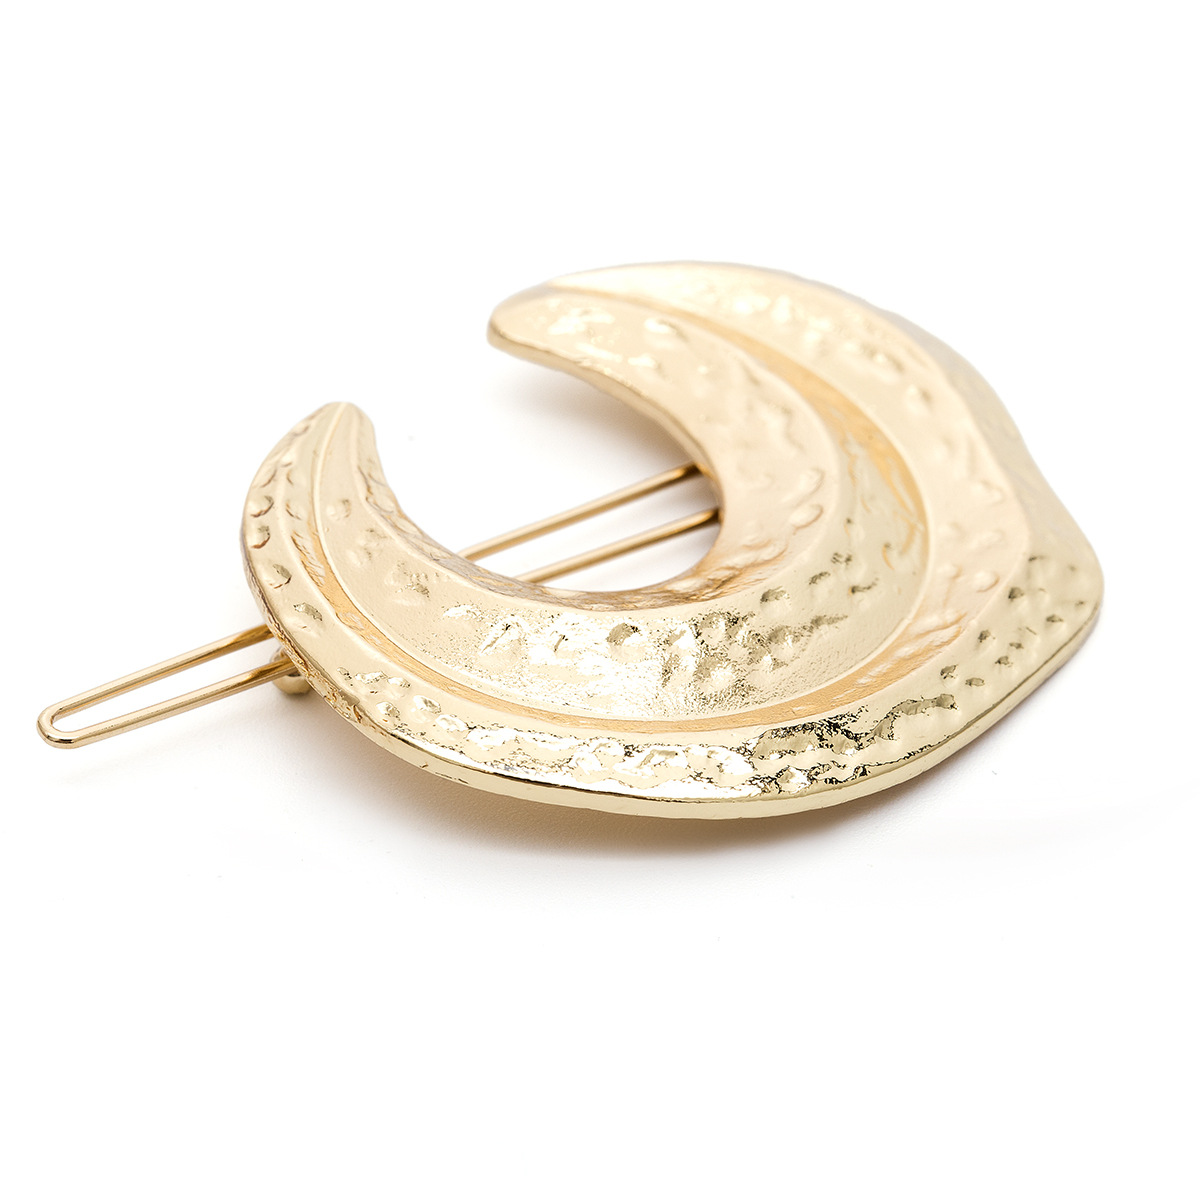 Eye-Catching Alloy Hair Clip for Posh Look